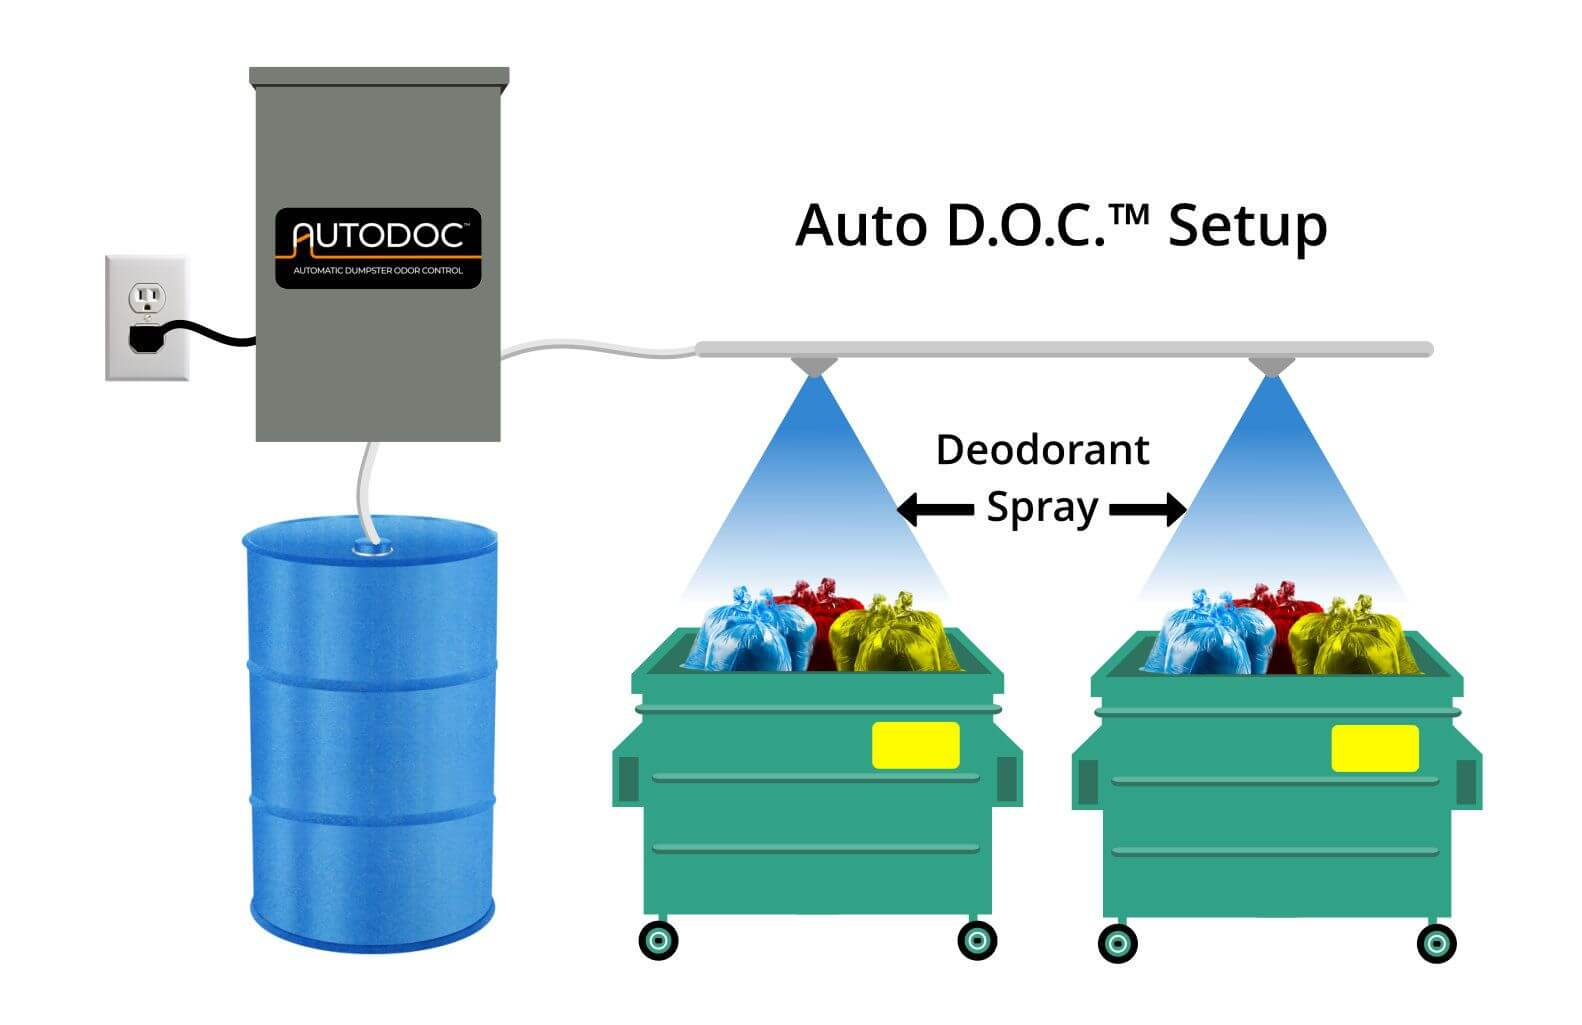 Automated Trash Room Dumpster Spray Odor Control System